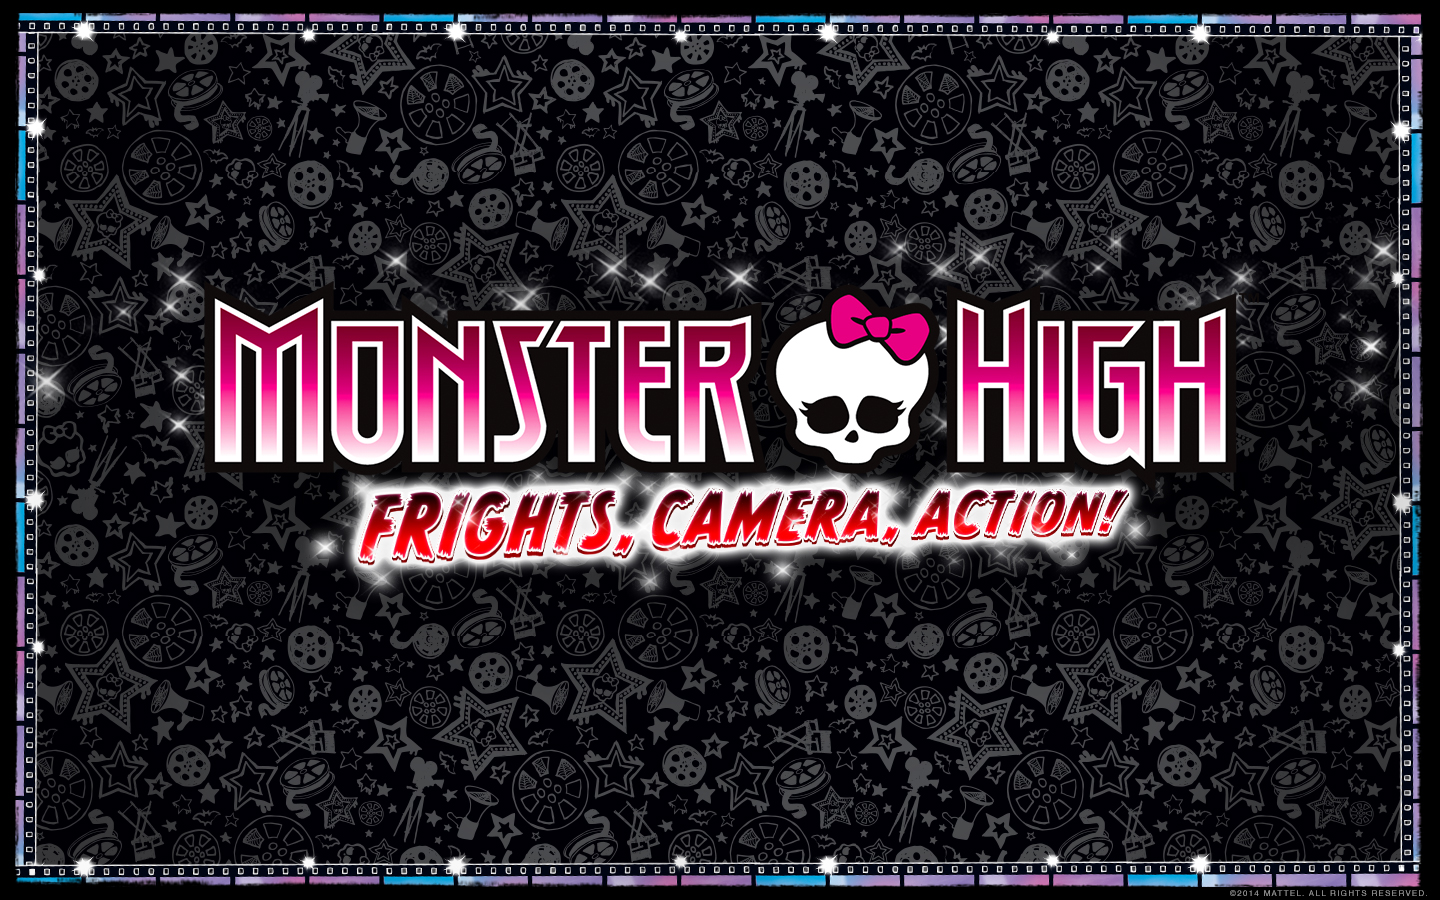 Wallpapers Icons Frights Camera Action Monster High 1440x900